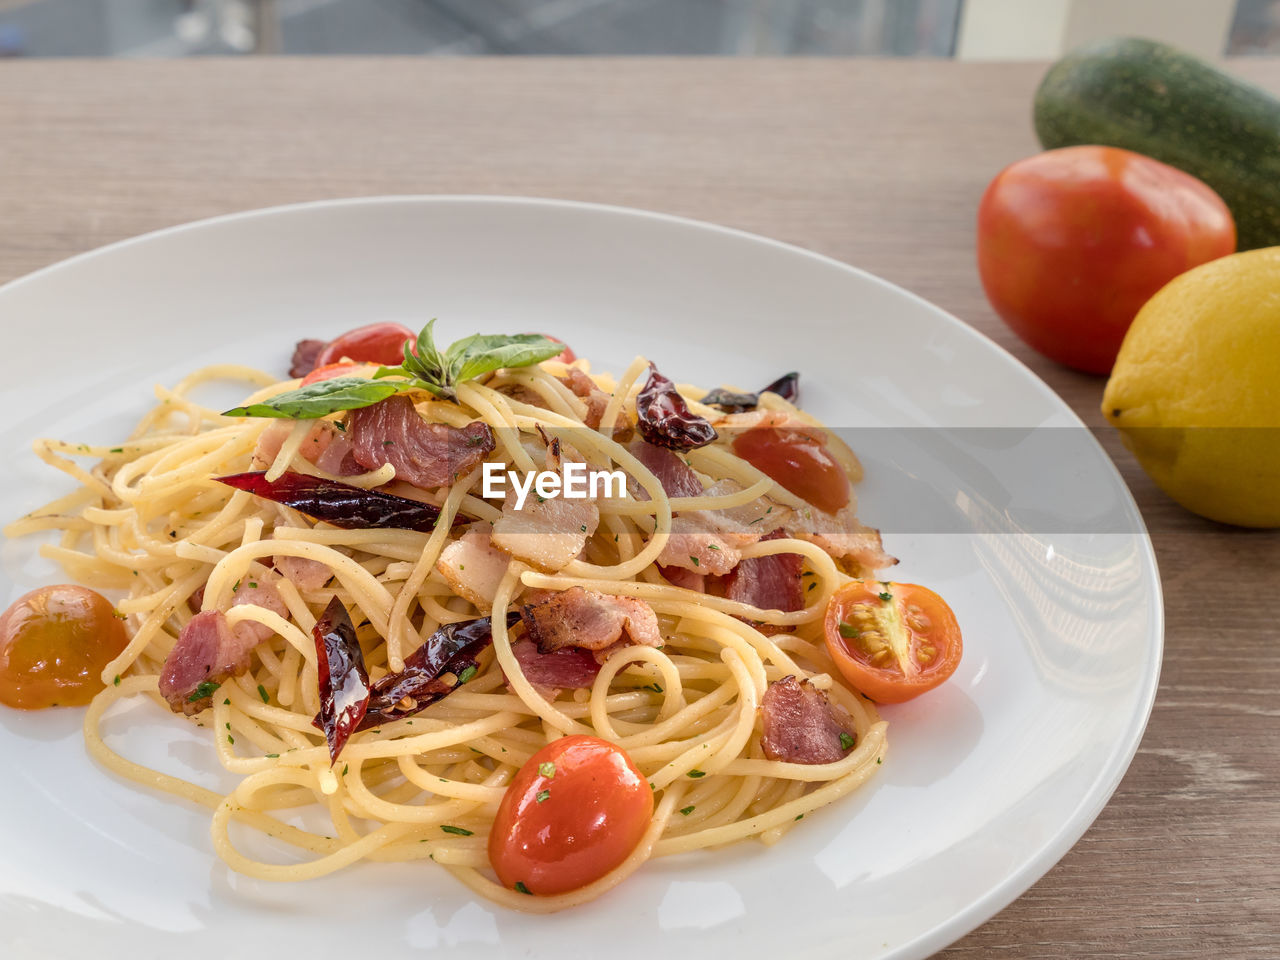 food and drink, food, pasta, freshness, italian food, healthy eating, fruit, plate, tomato, table, ready-to-eat, still life, wellbeing, serving size, vegetable, spaghetti, indoors, close-up, no people, meal, herb, garnish, temptation, crockery